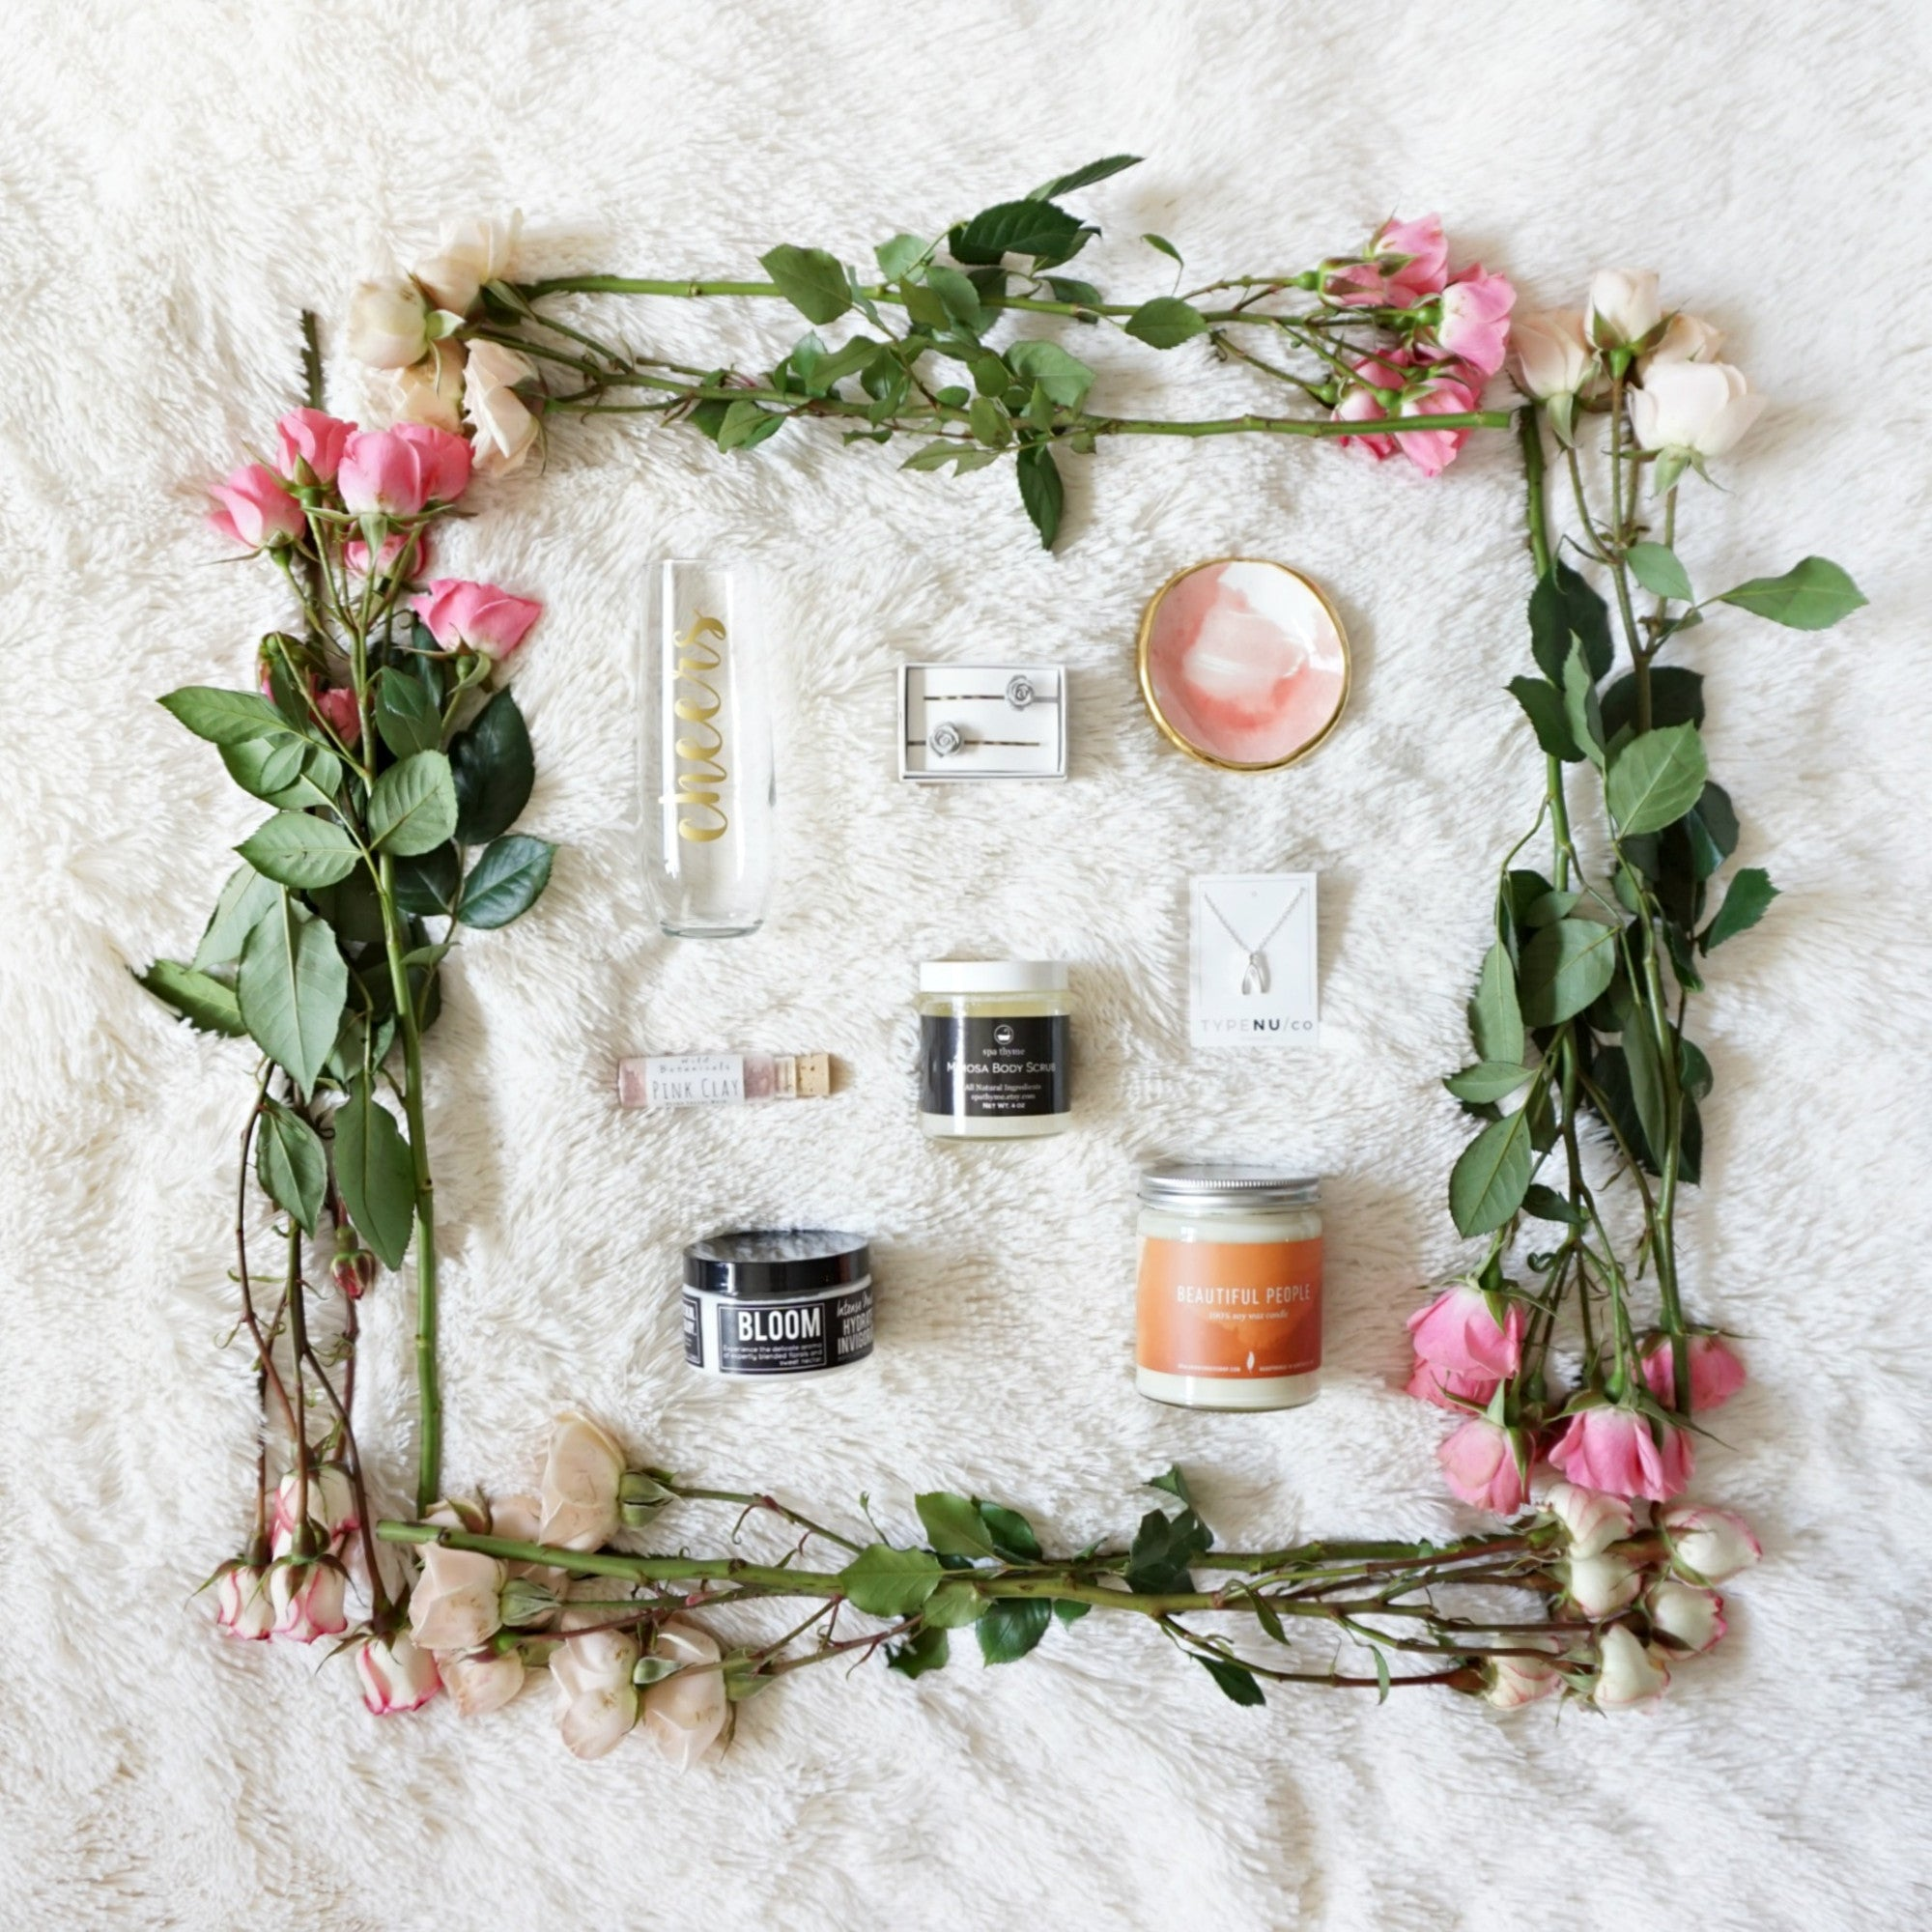 Thoughtfully curated